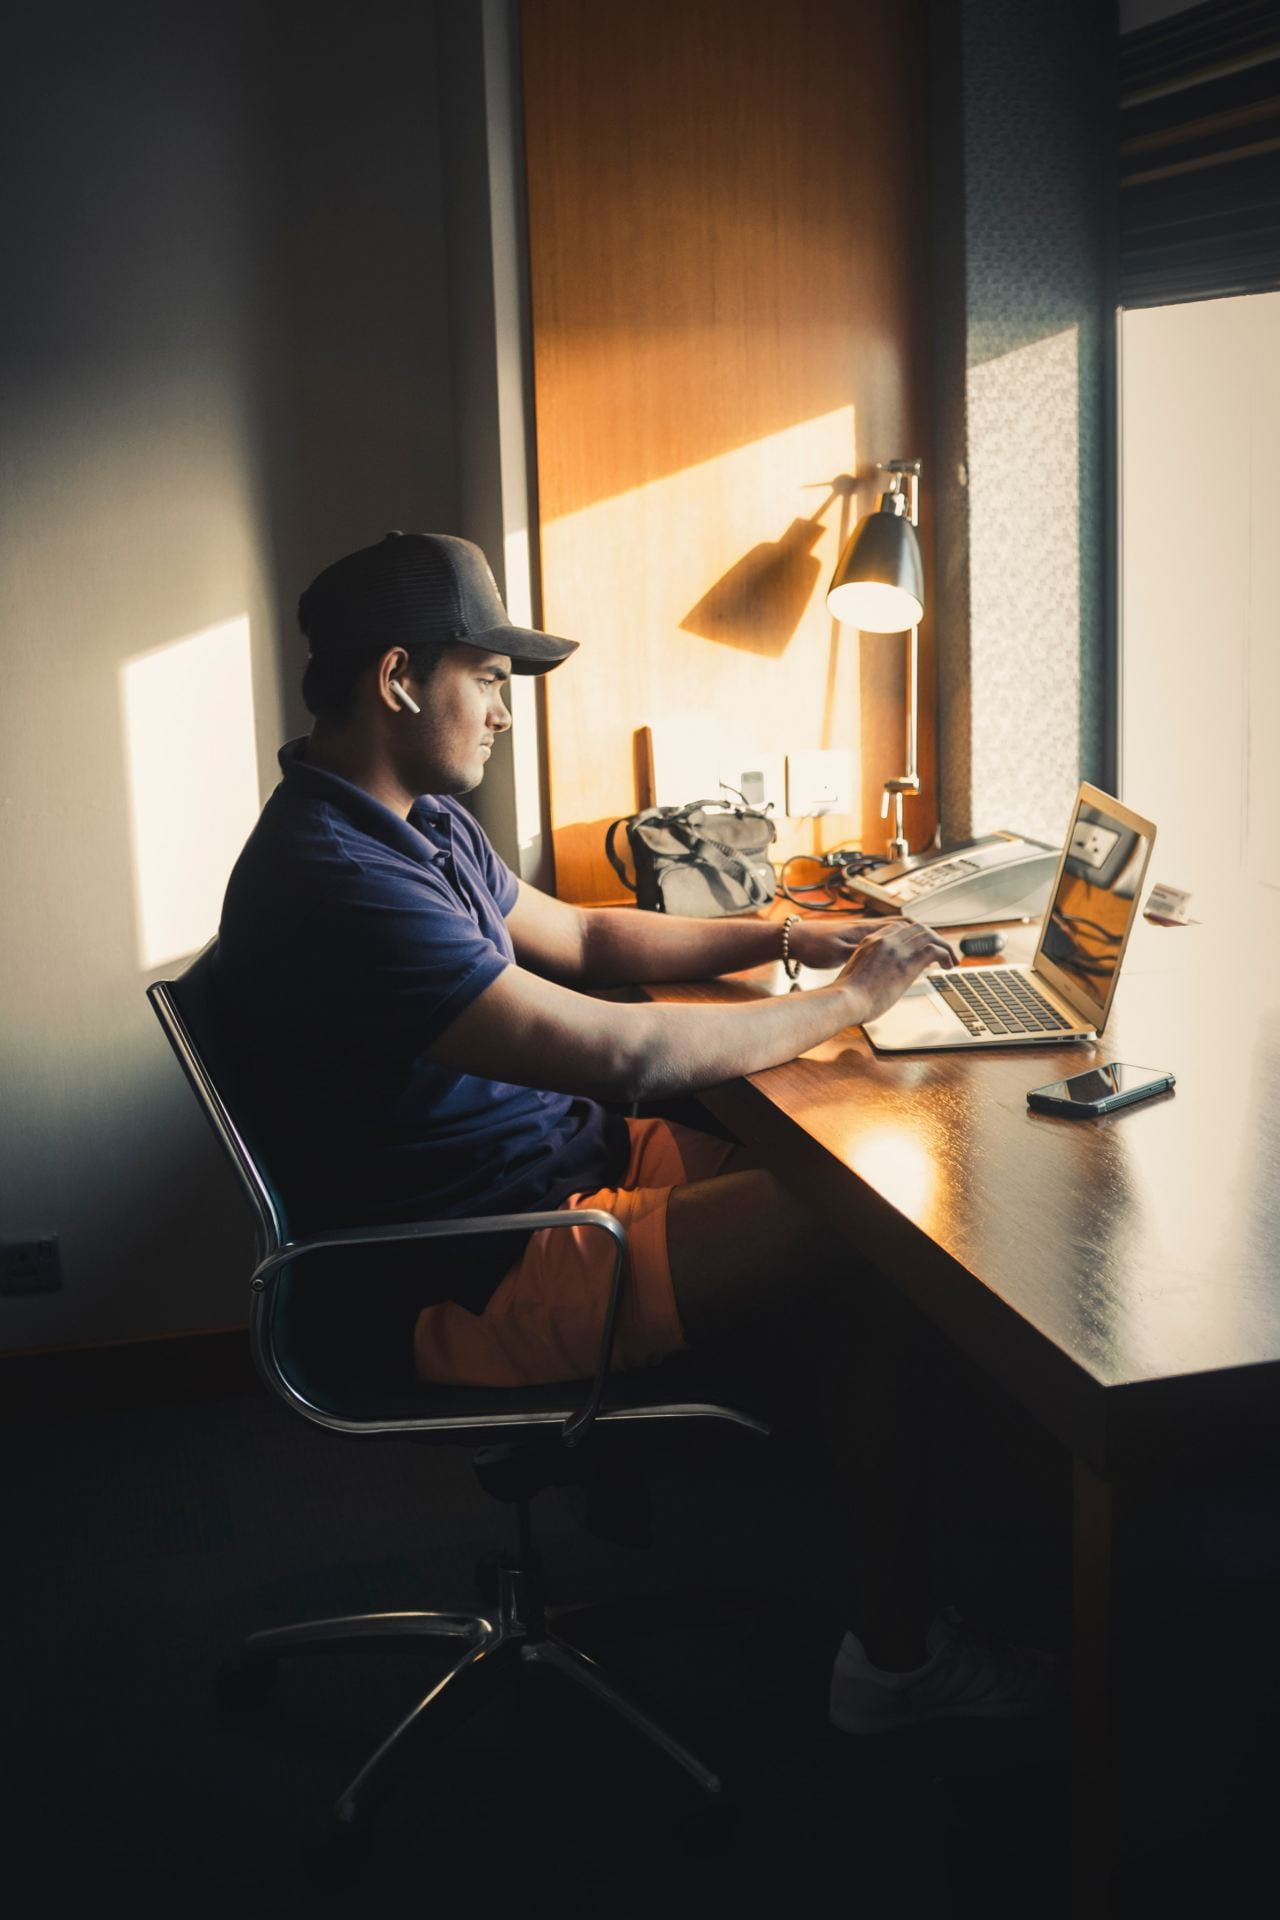 Person in a ballcap sits at a desk using a laptop